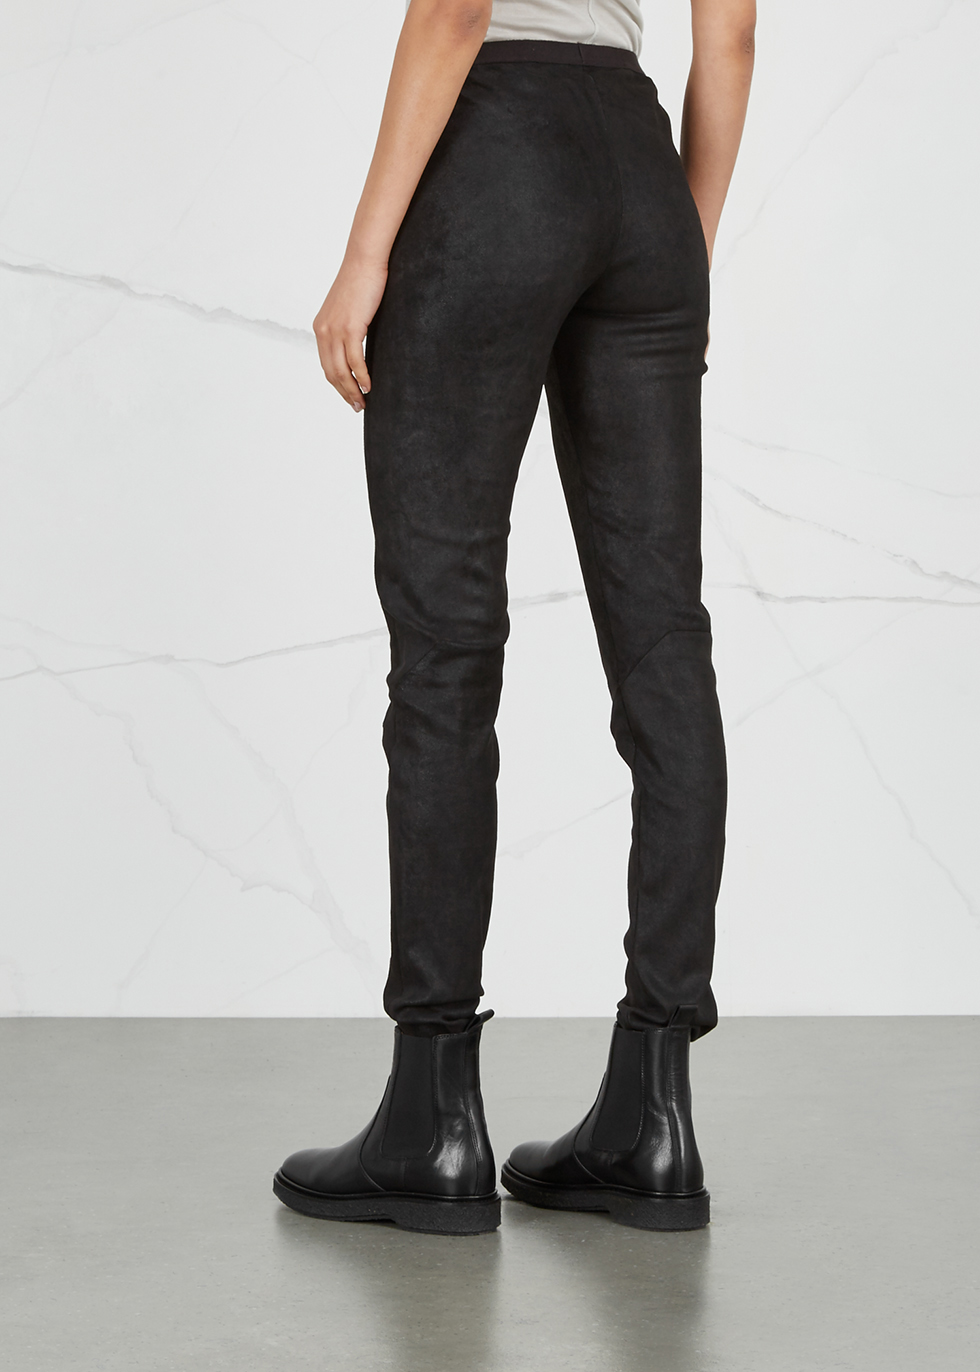 Charcoal stretch leather leggings - Rick Owens